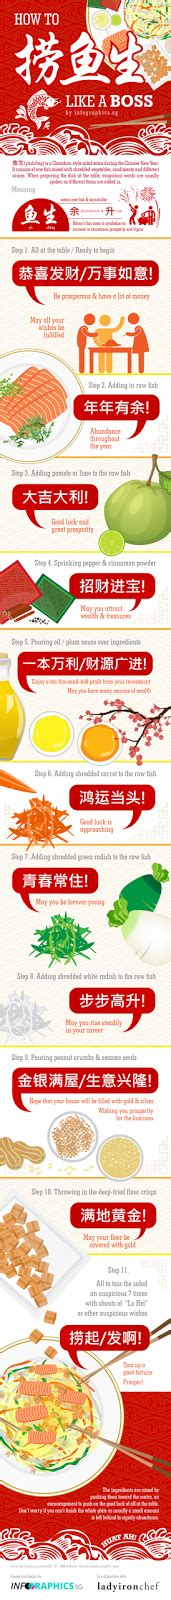 new year lo hei phrases puzzle of 谜图人生 renri 人日 and the tradition of yu